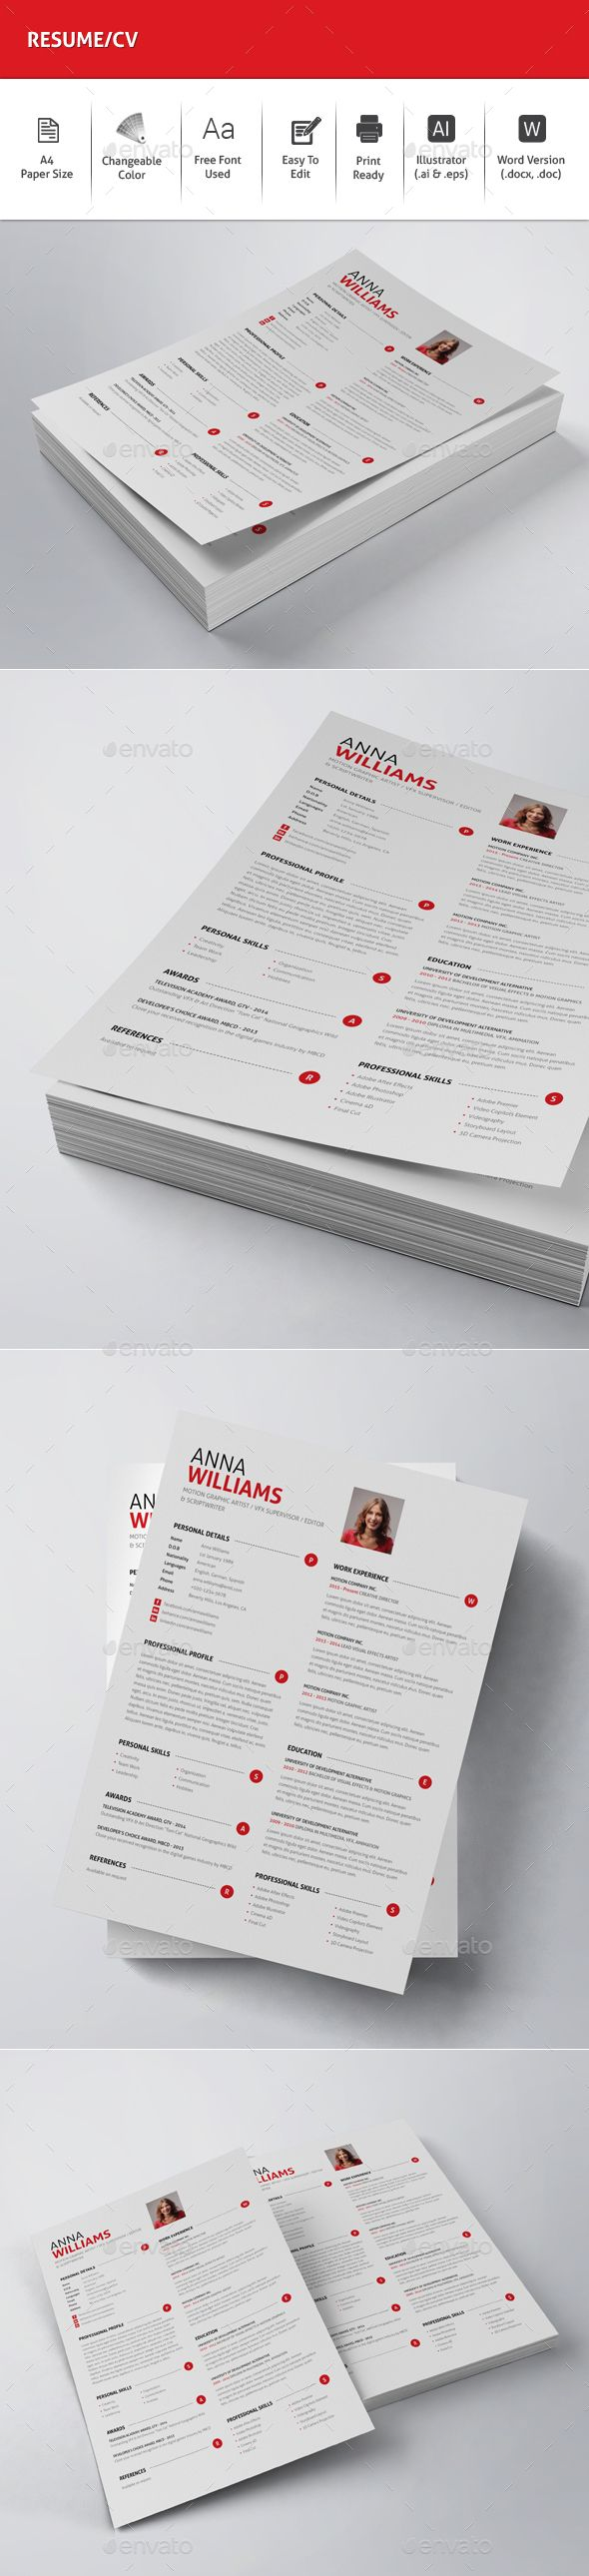 ResumeCV 102 best 06 RESUME images on Pinterest